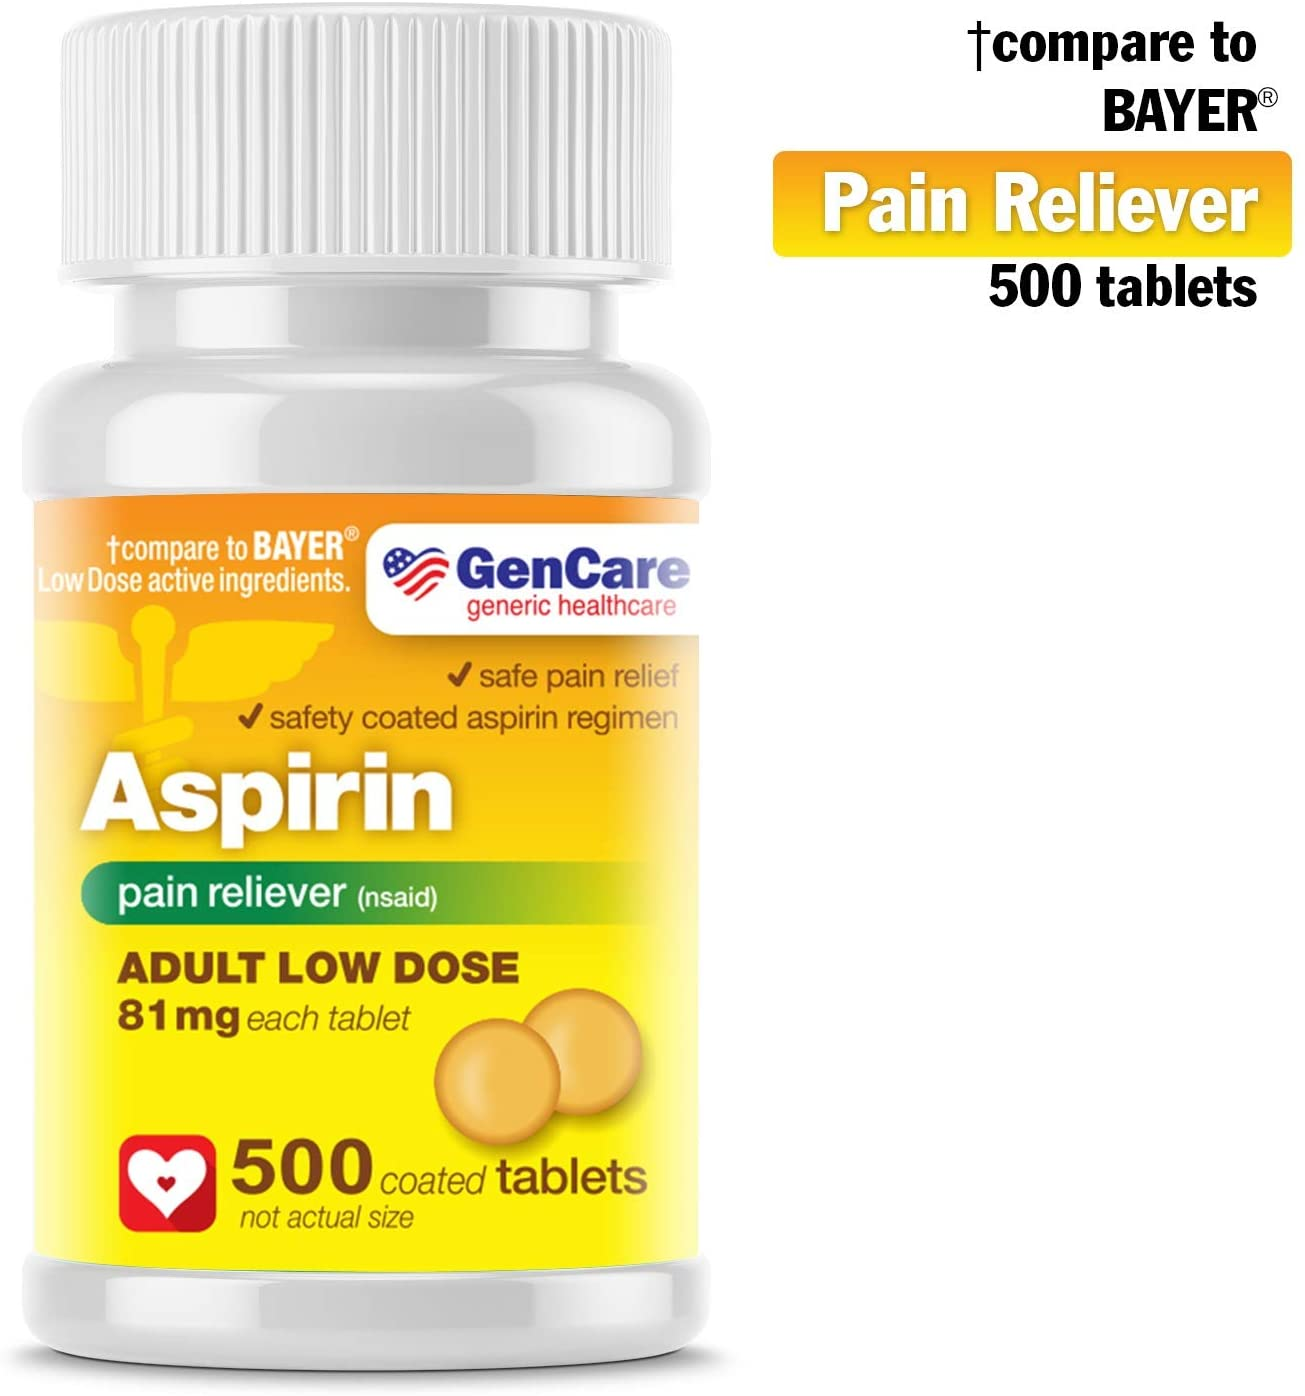 GenCare - Aspirin Pain Reliever (NSAID) 81 mg (500 Coated Tablets) Adult Low Dose | Safe Pain Relief Enteric Coated Aspirin Pills | Muscle Pain & Menstrual Pain Relief | Generic Bayer